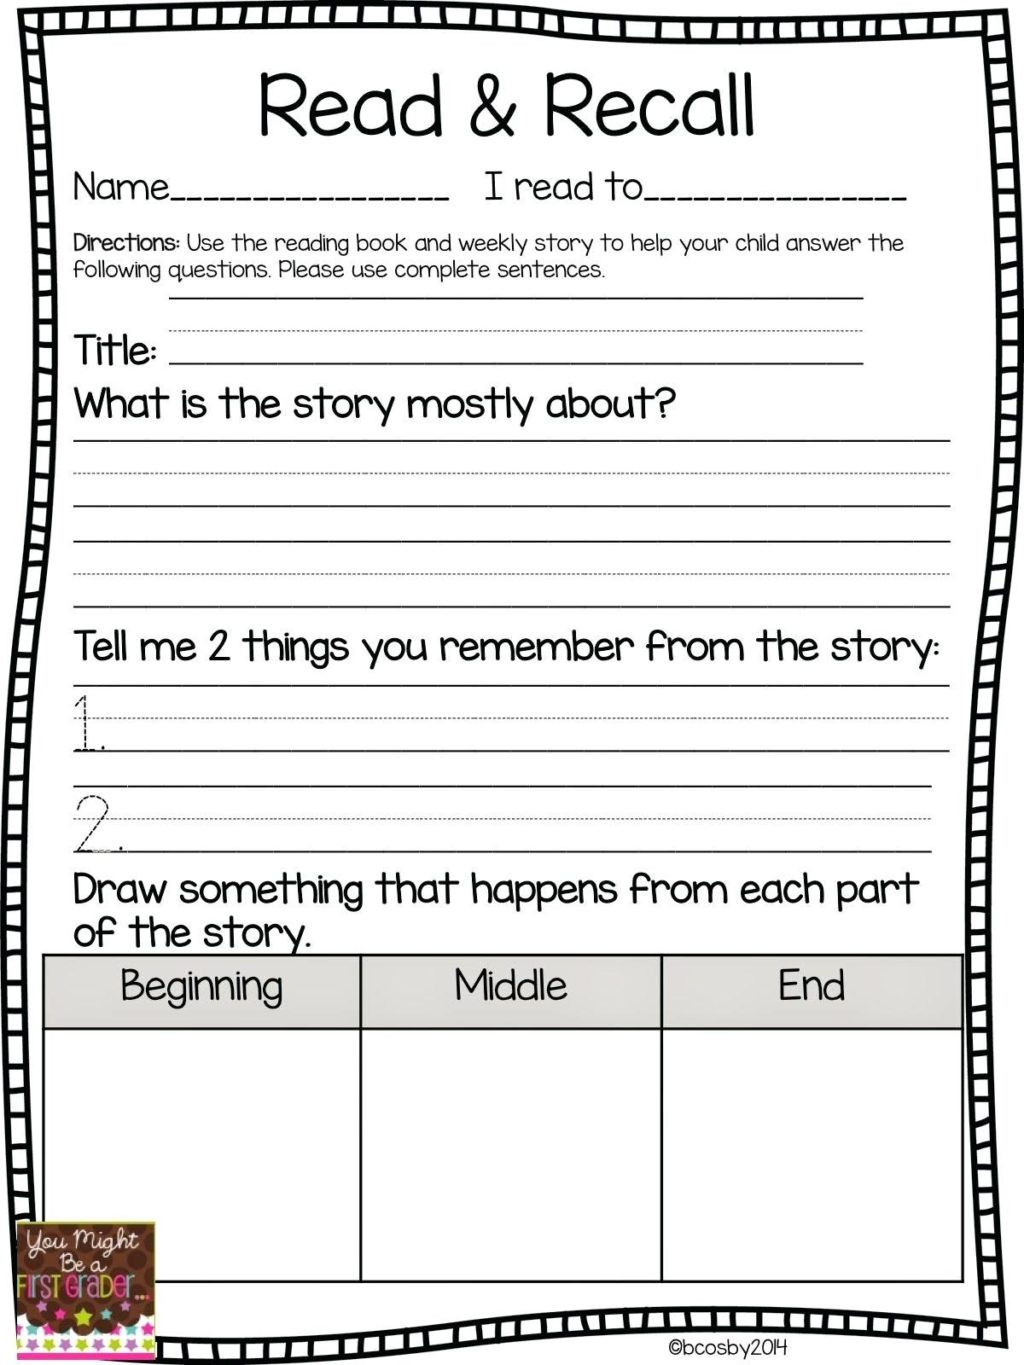 Following Directions Worksheet Third Grade Worksheet Worksheet Math Prehension Worksheets